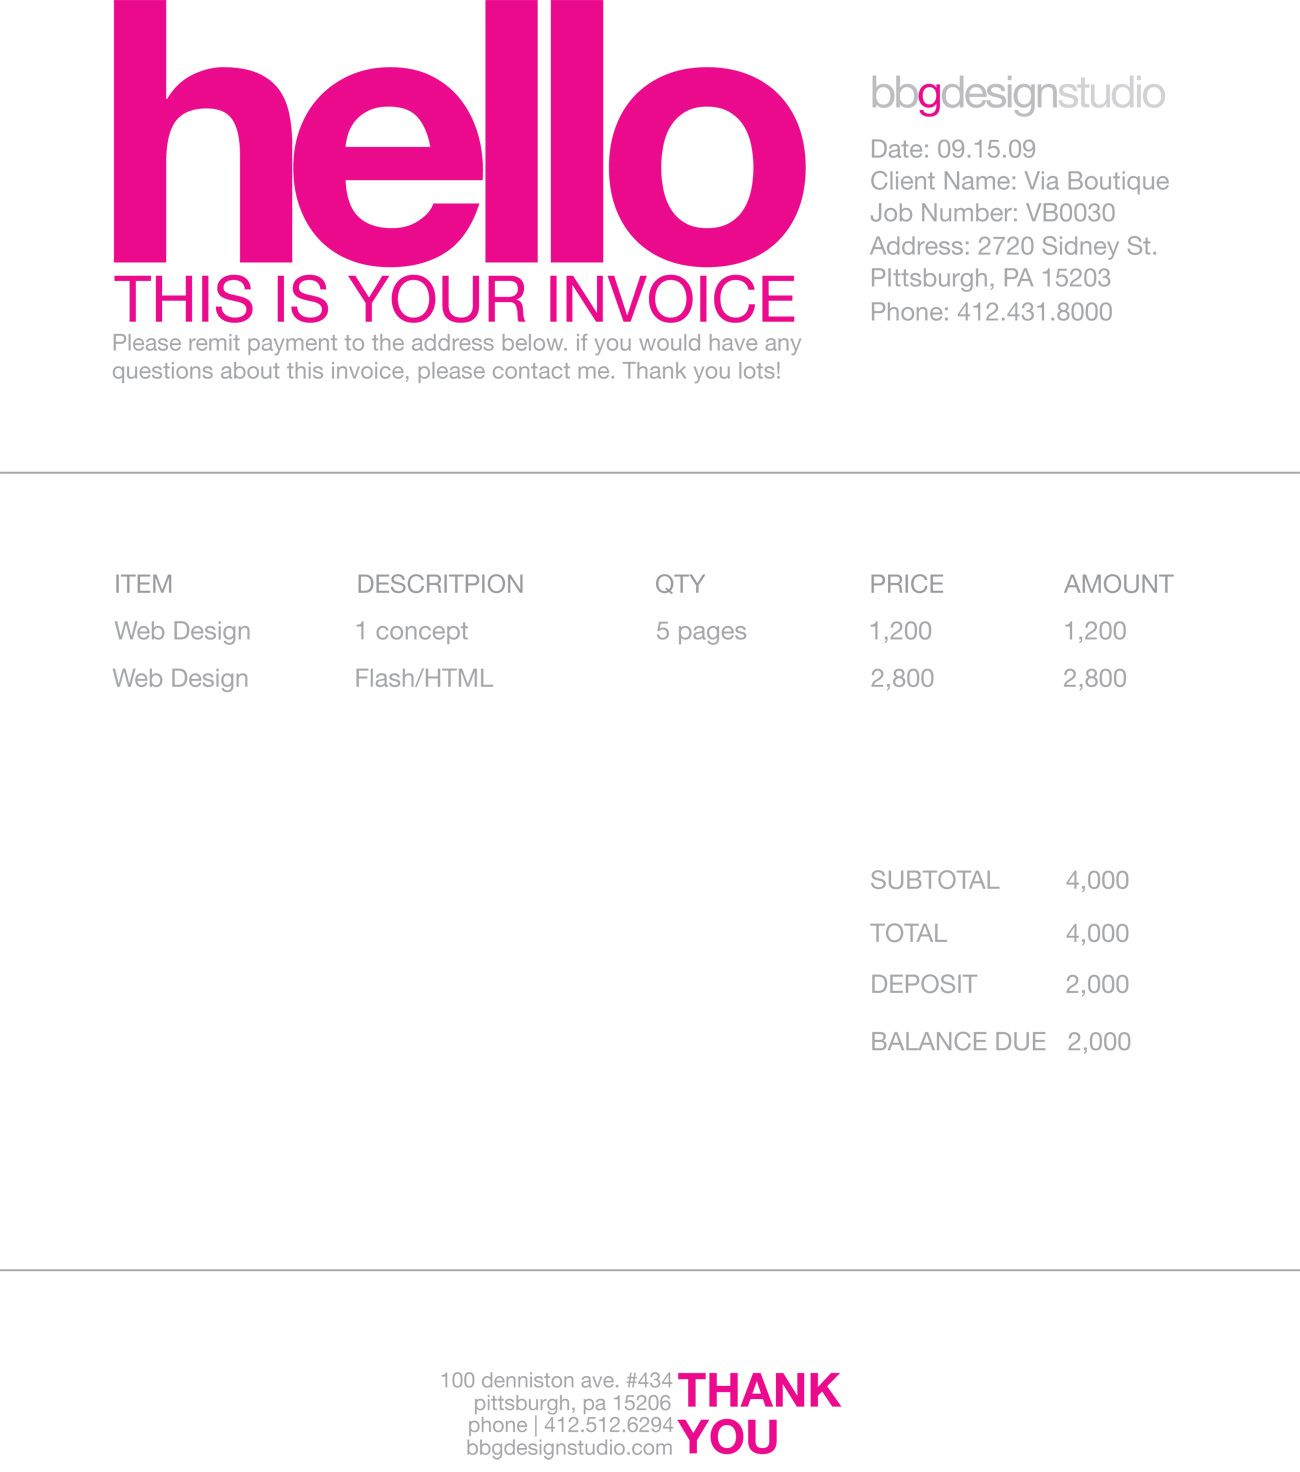 Ebitus  Pretty  Images About Invoice Design On Pinterest With Foxy Professional Invoice Template Besides Free Online Invoices Furthermore Quickbooks Invoice Template With Divine How To Create An Invoice In Word Also Invoicing Templates In Addition Proforma Invoice Vs Commercial Invoice And Shipping Invoice As Well As Consulting Invoice Additionally Standard Invoice Template From Pinterestcom With Ebitus  Foxy  Images About Invoice Design On Pinterest With Divine Professional Invoice Template Besides Free Online Invoices Furthermore Quickbooks Invoice Template And Pretty How To Create An Invoice In Word Also Invoicing Templates In Addition Proforma Invoice Vs Commercial Invoice From Pinterestcom